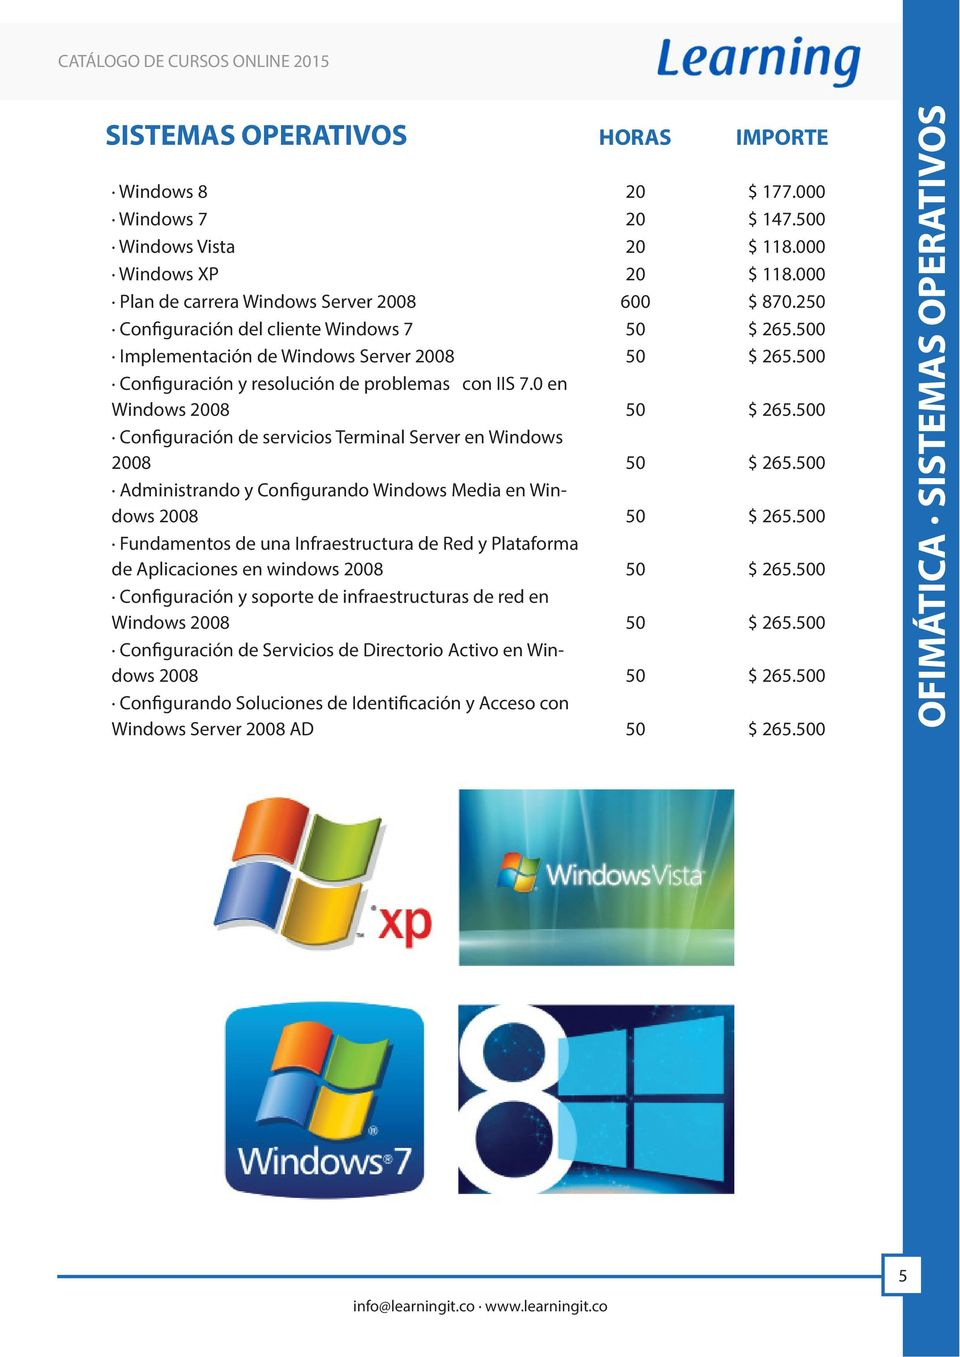 500 Configuración de servicios Terminal Server en Windows 2008 50 $ 265.500 Administrando y Configurando Windows Media en Windows 2008 50 $ 265.